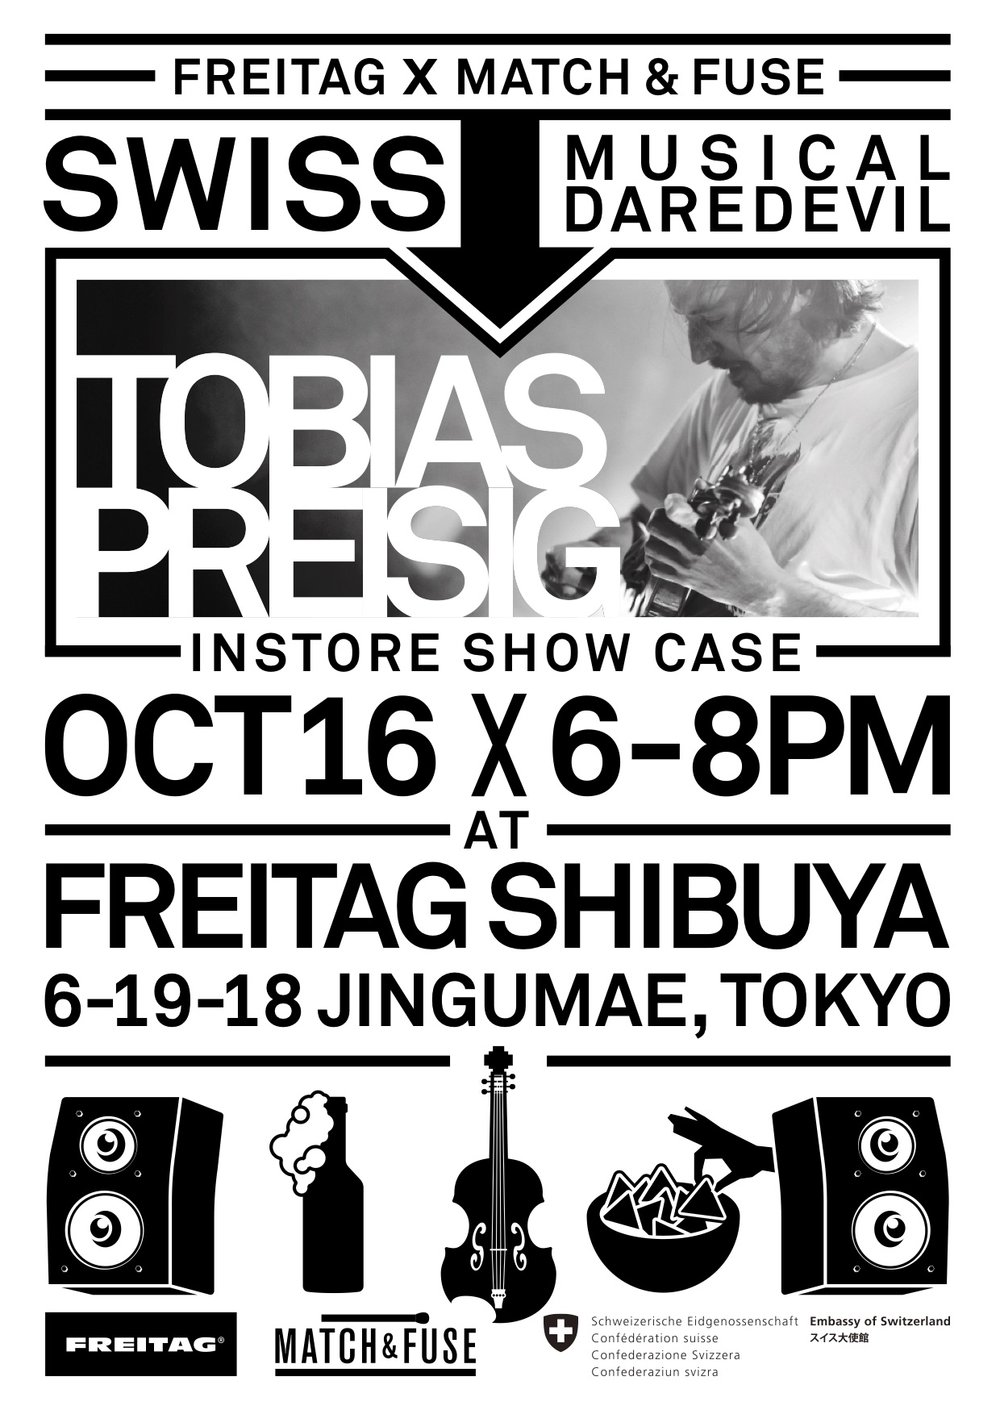 shibuya_tobias_flyer_03OCT2018.jpg